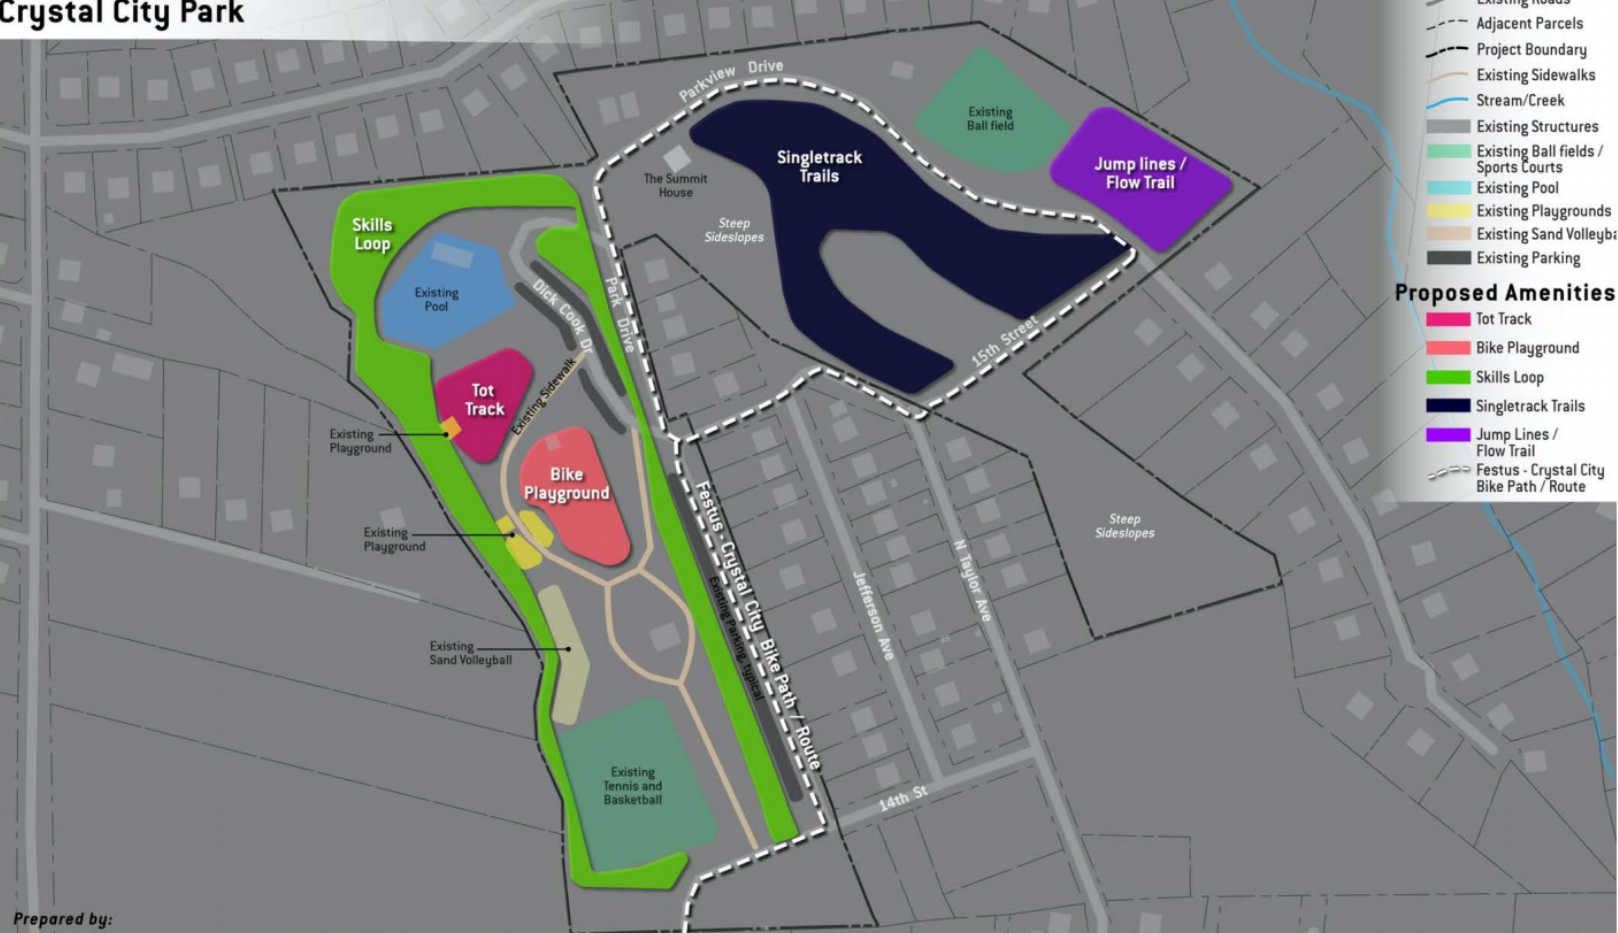 Crystal City Park Concept Plan